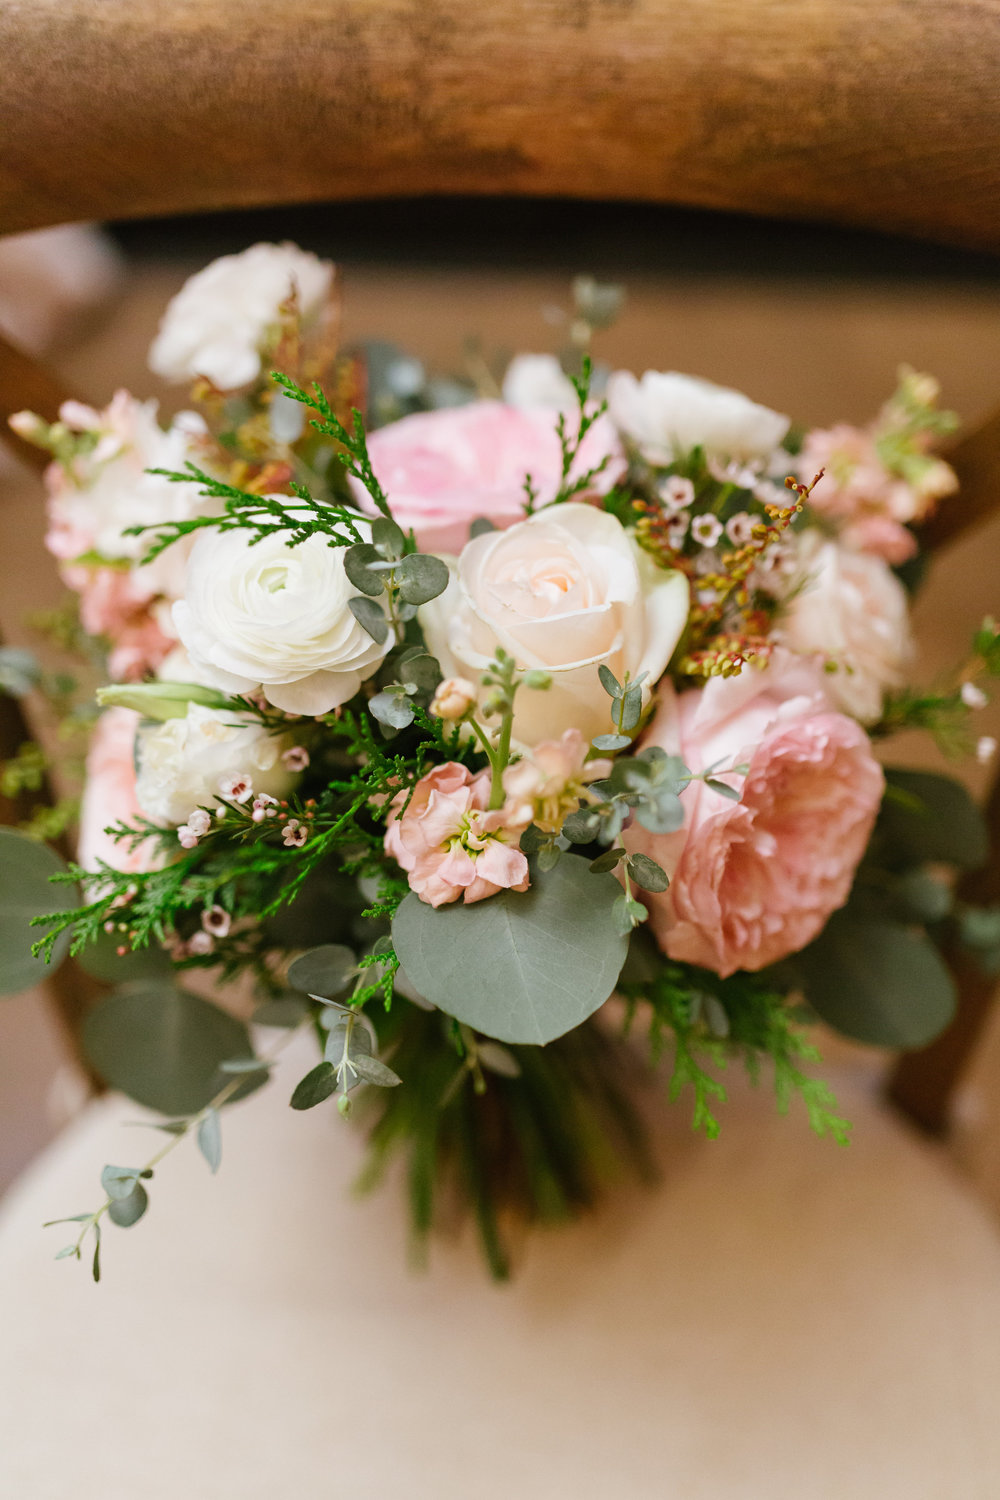 Bridal bouquet with David Austin garden roses and ranunculus